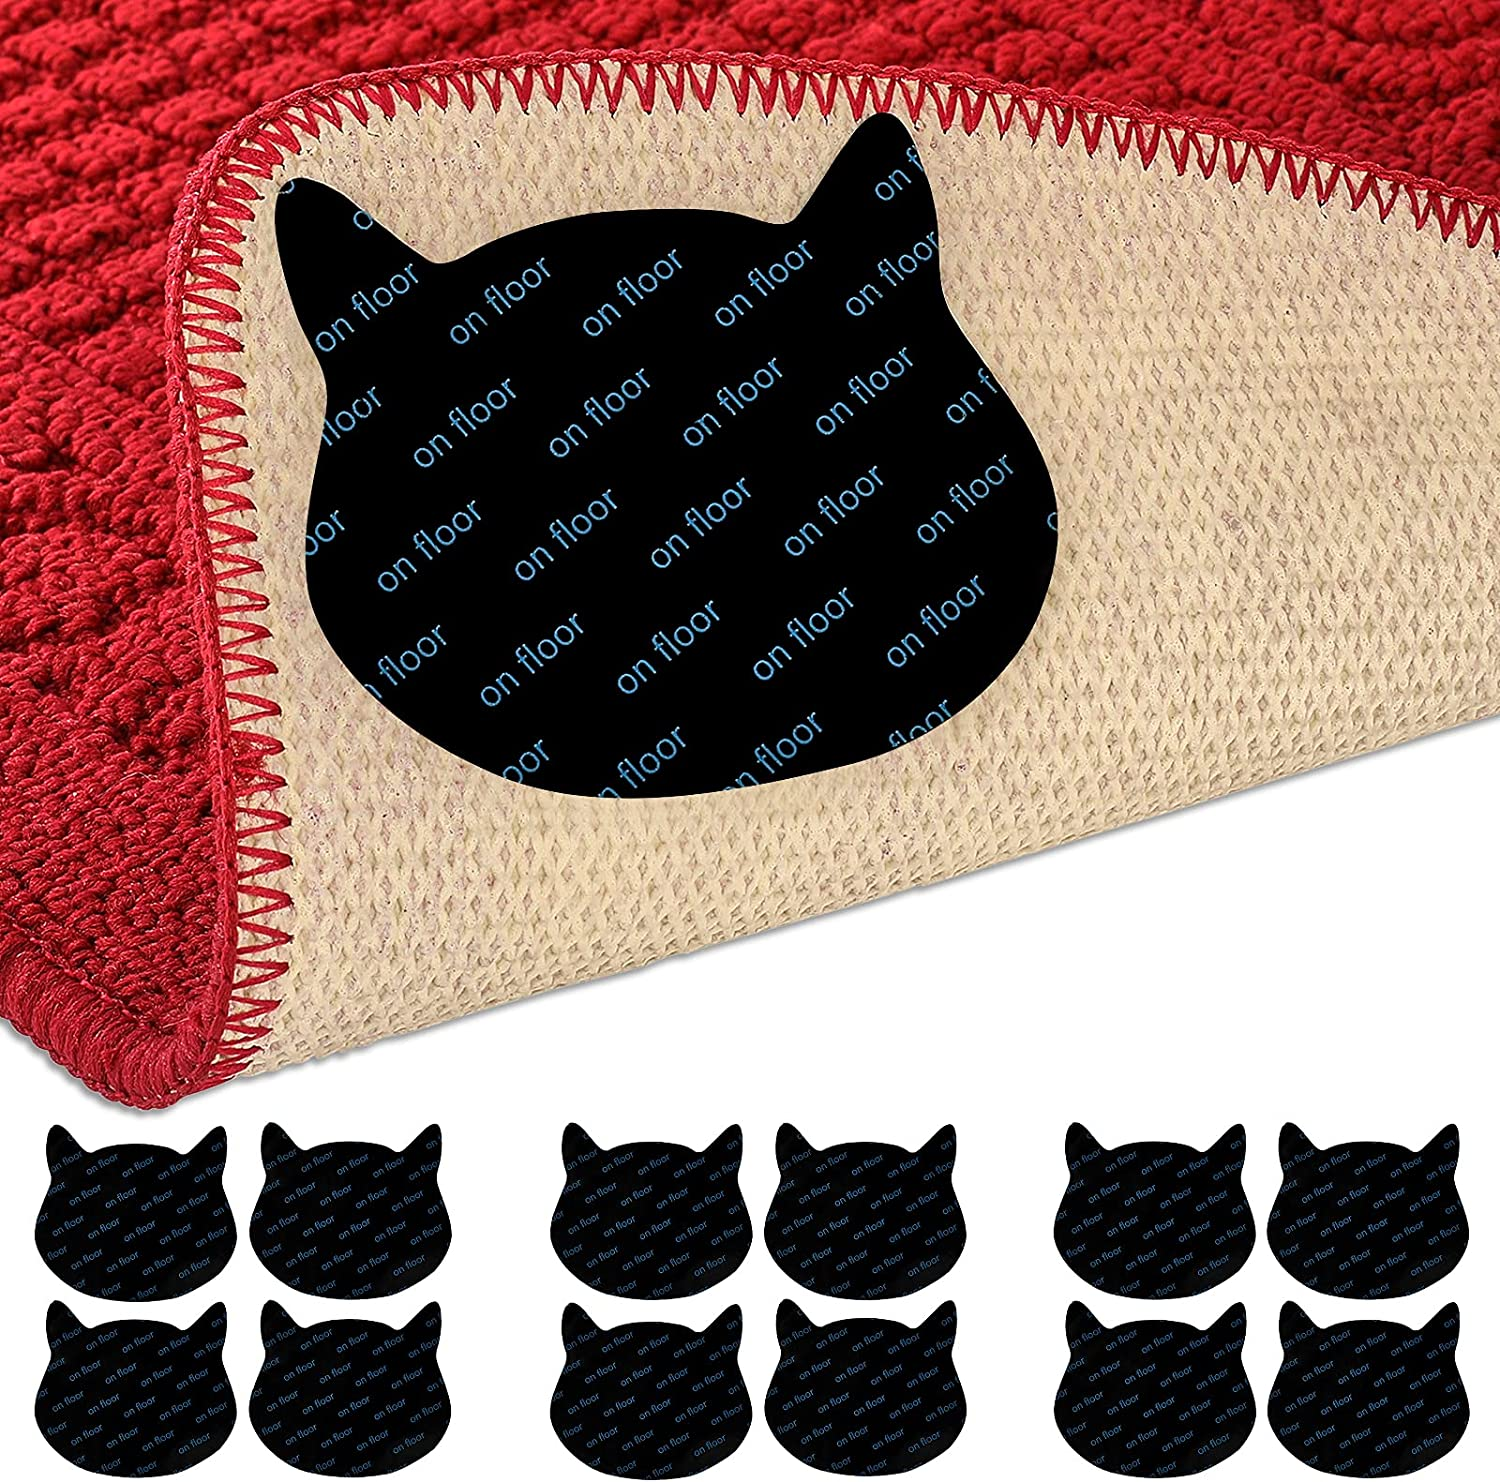 12 Pcs Cat Rug Grippers Reusable Non Carpet F Weekly update Wood for Slip Tape Safety and trust